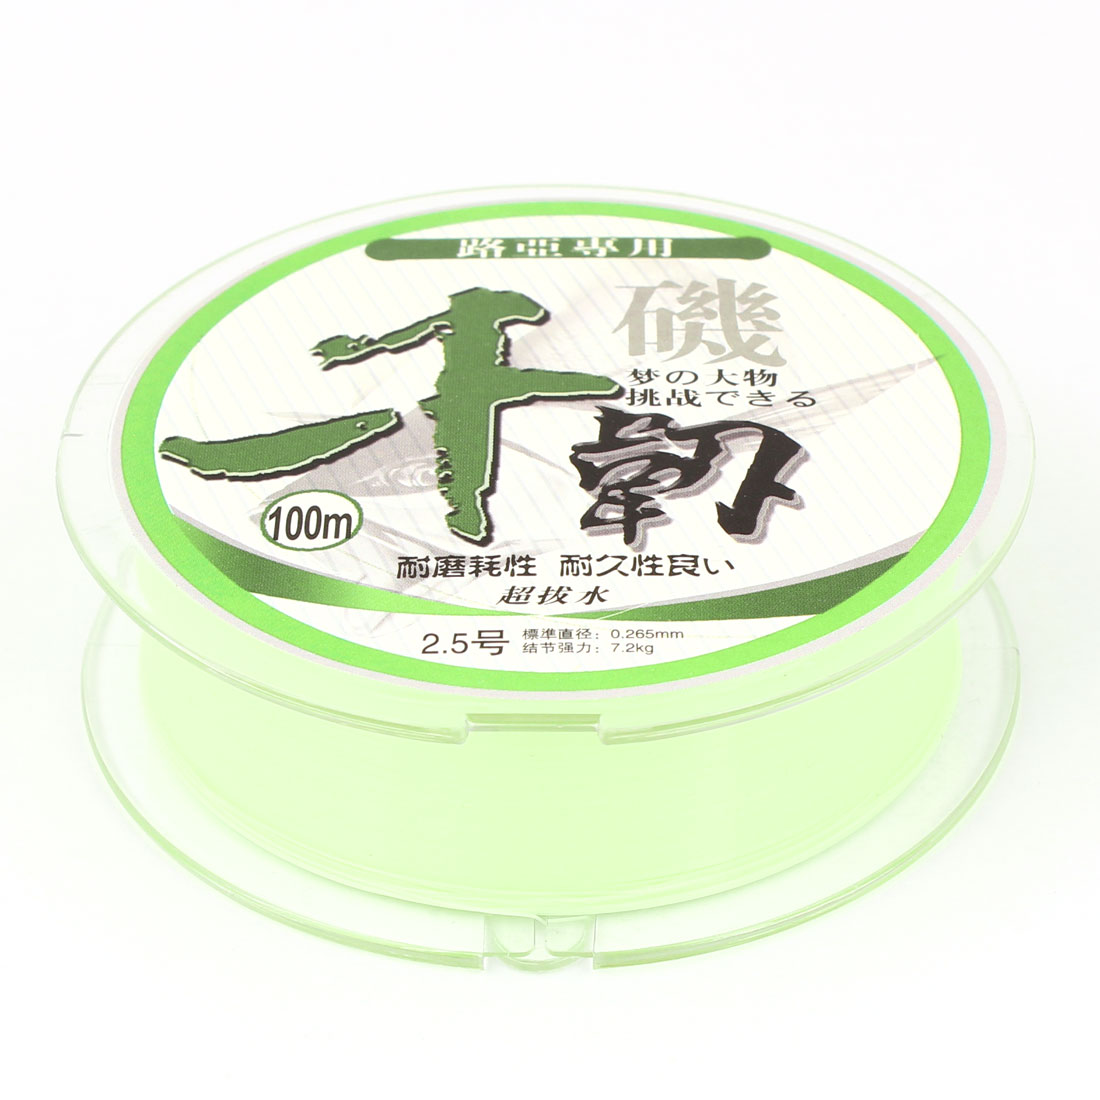 0.265mm Diameter 7.2Kg Light Green Nylon Freshwater Fishing Spool Line 100M